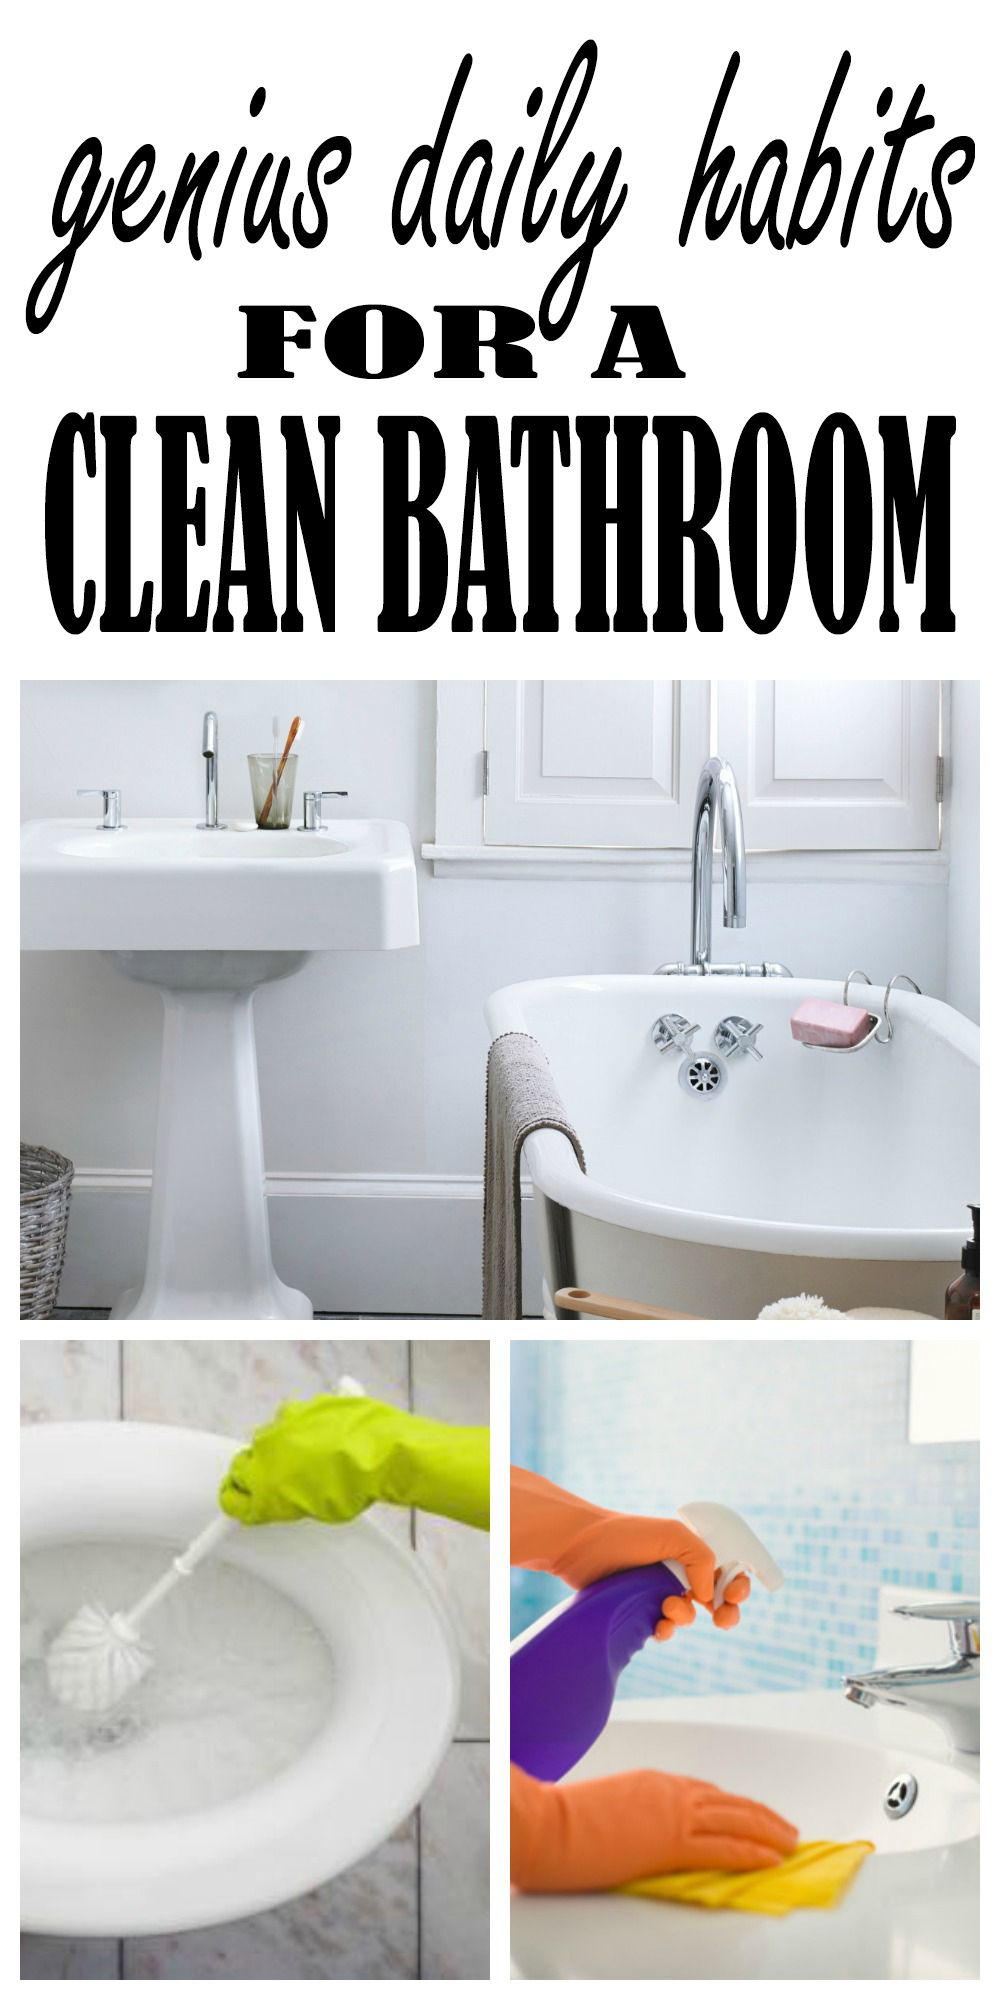 How to clean your living room in 5 minutes - Genius Habits To Clean Your Bathroom In Just 5 Minutes A Day With Some Simple